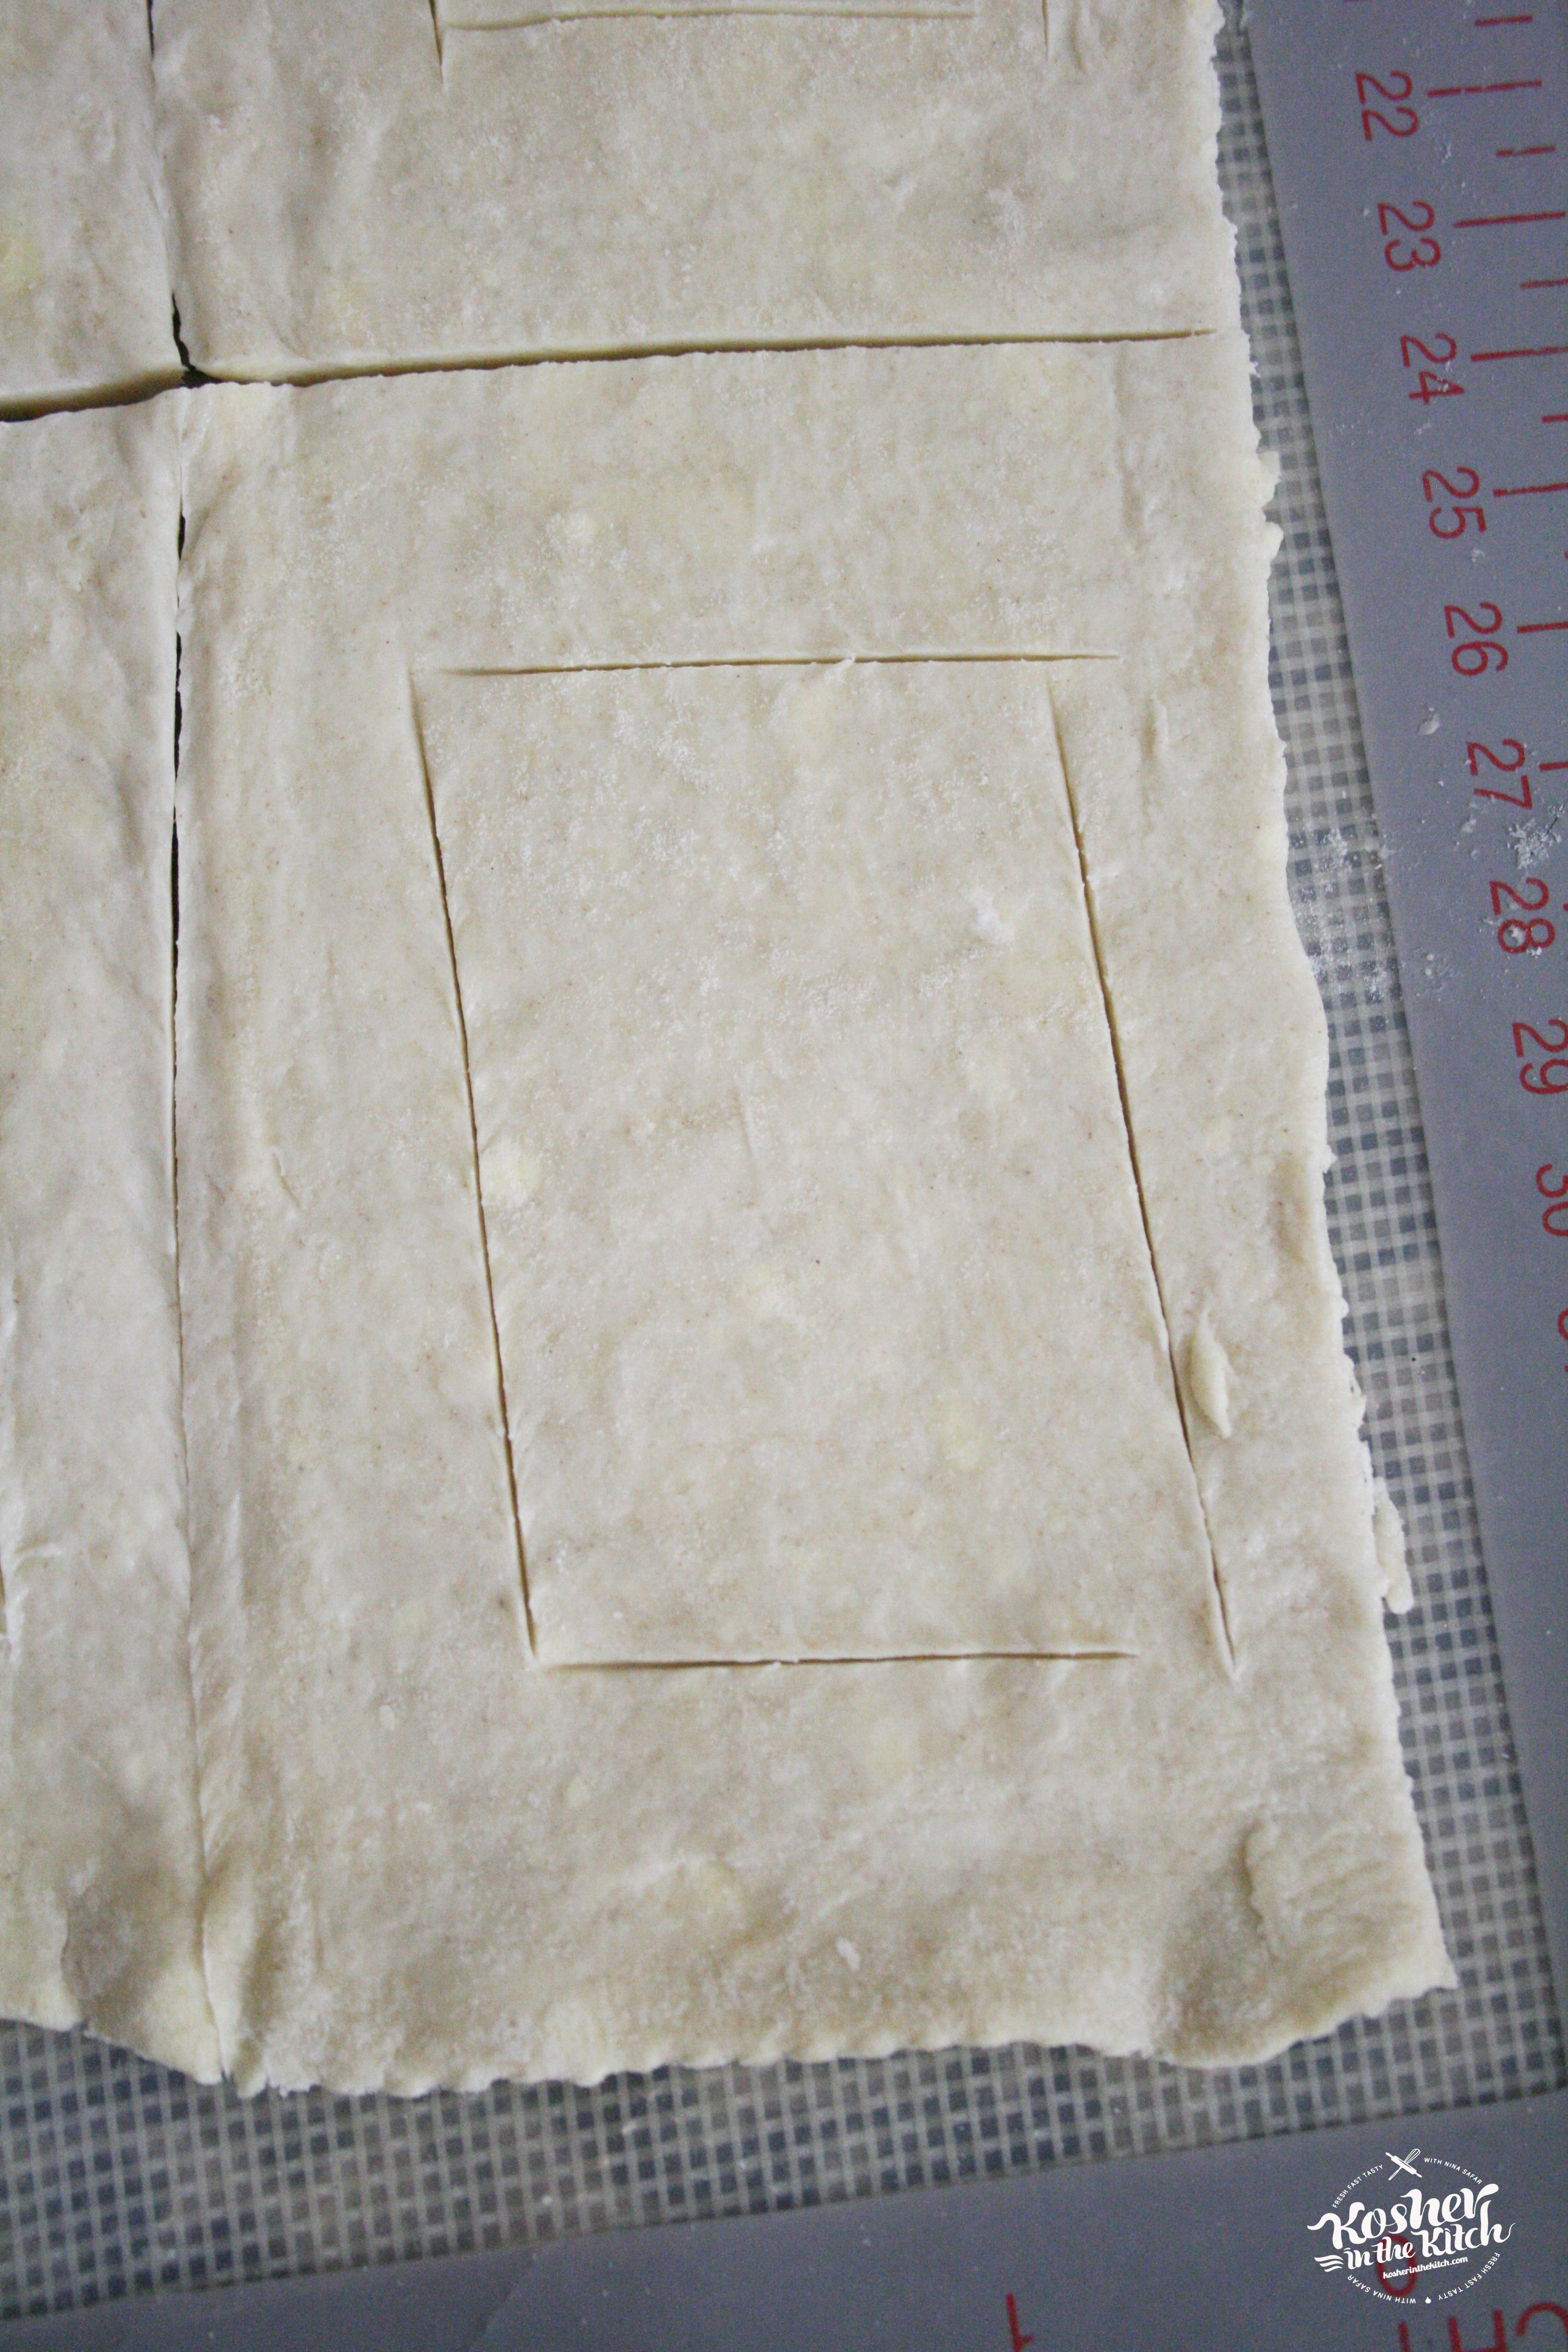 Lightly Trace Mini Rectangle within the Rectangle